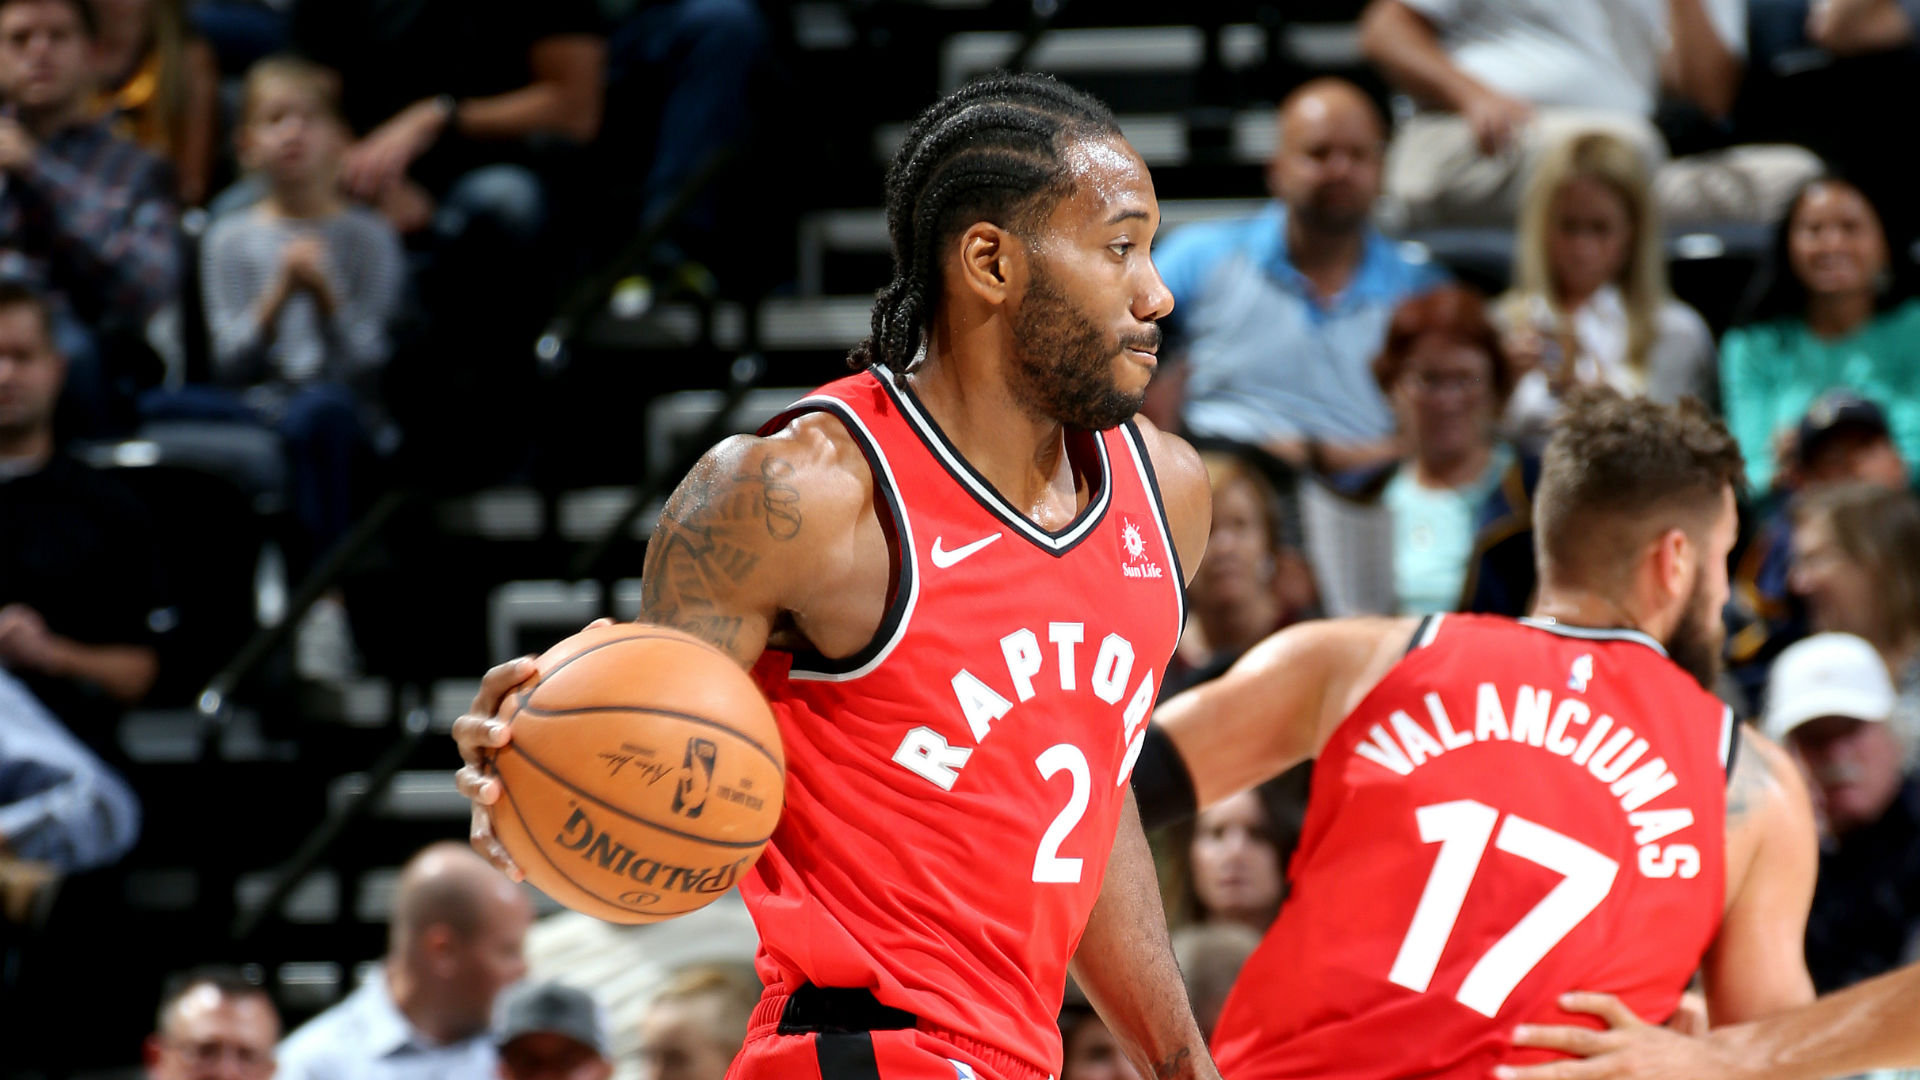 2018 Nba Preseason Live Highlights And Updates From